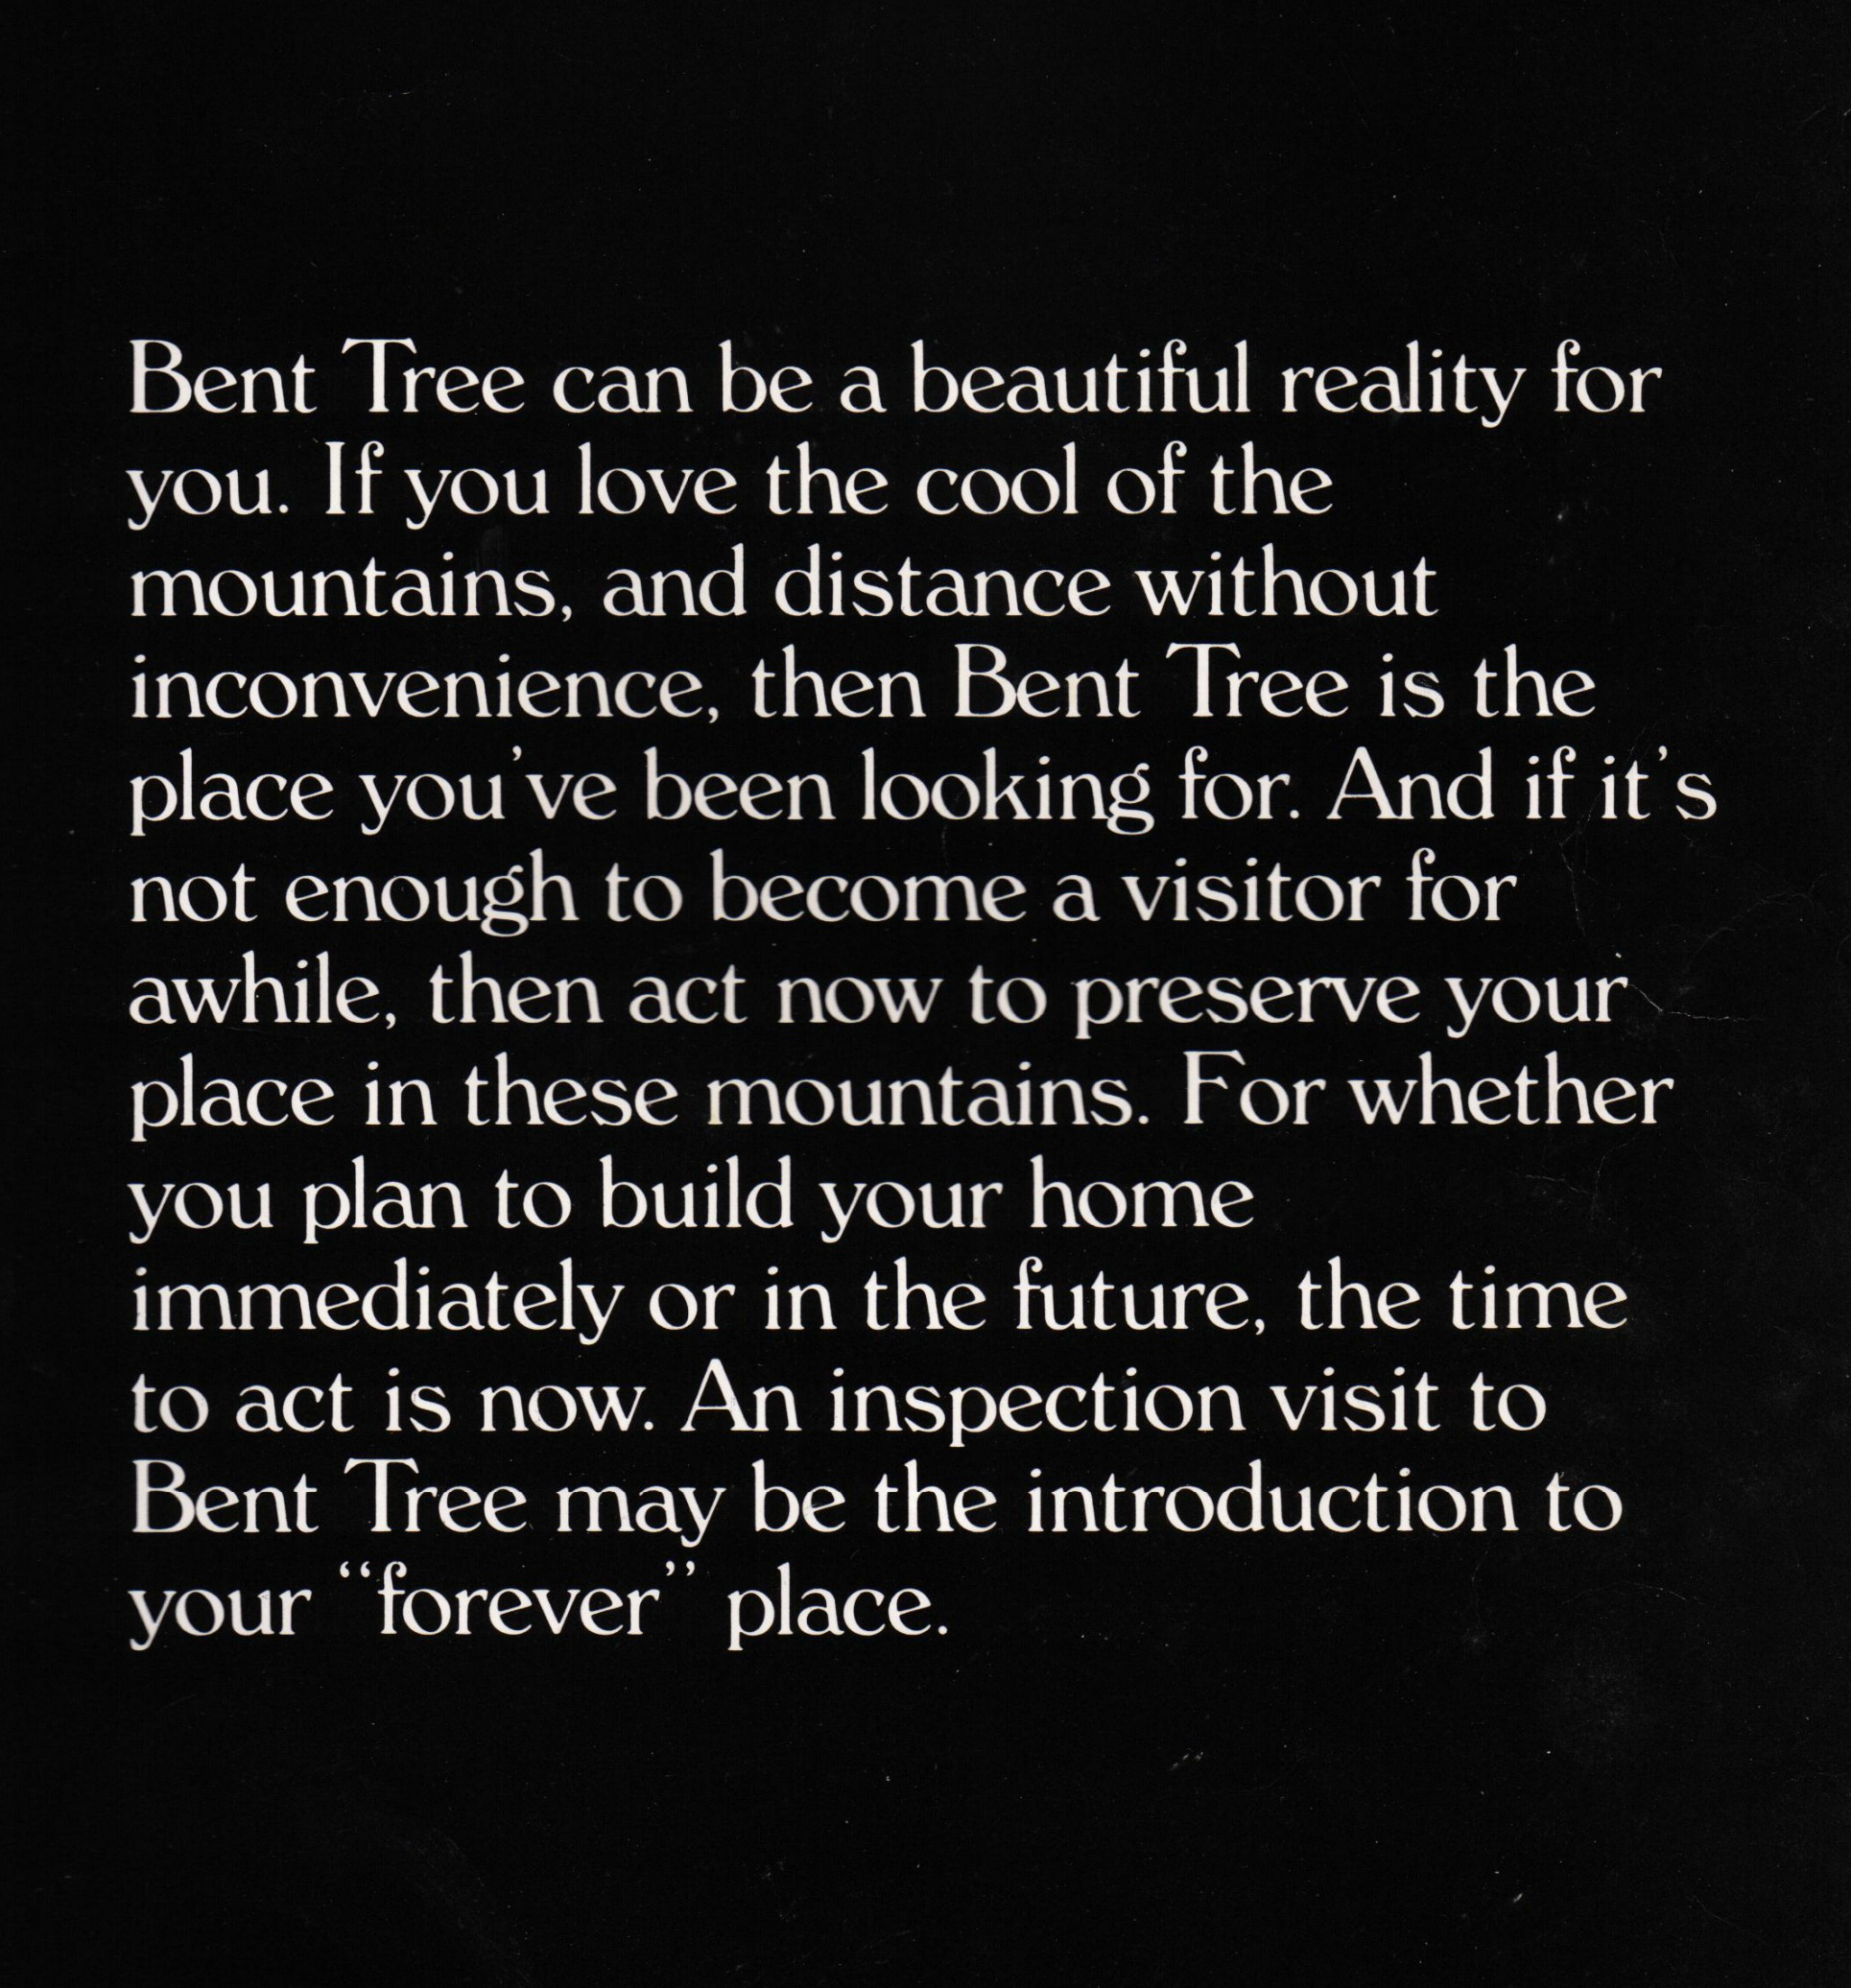 Early marketing, Bent Tree